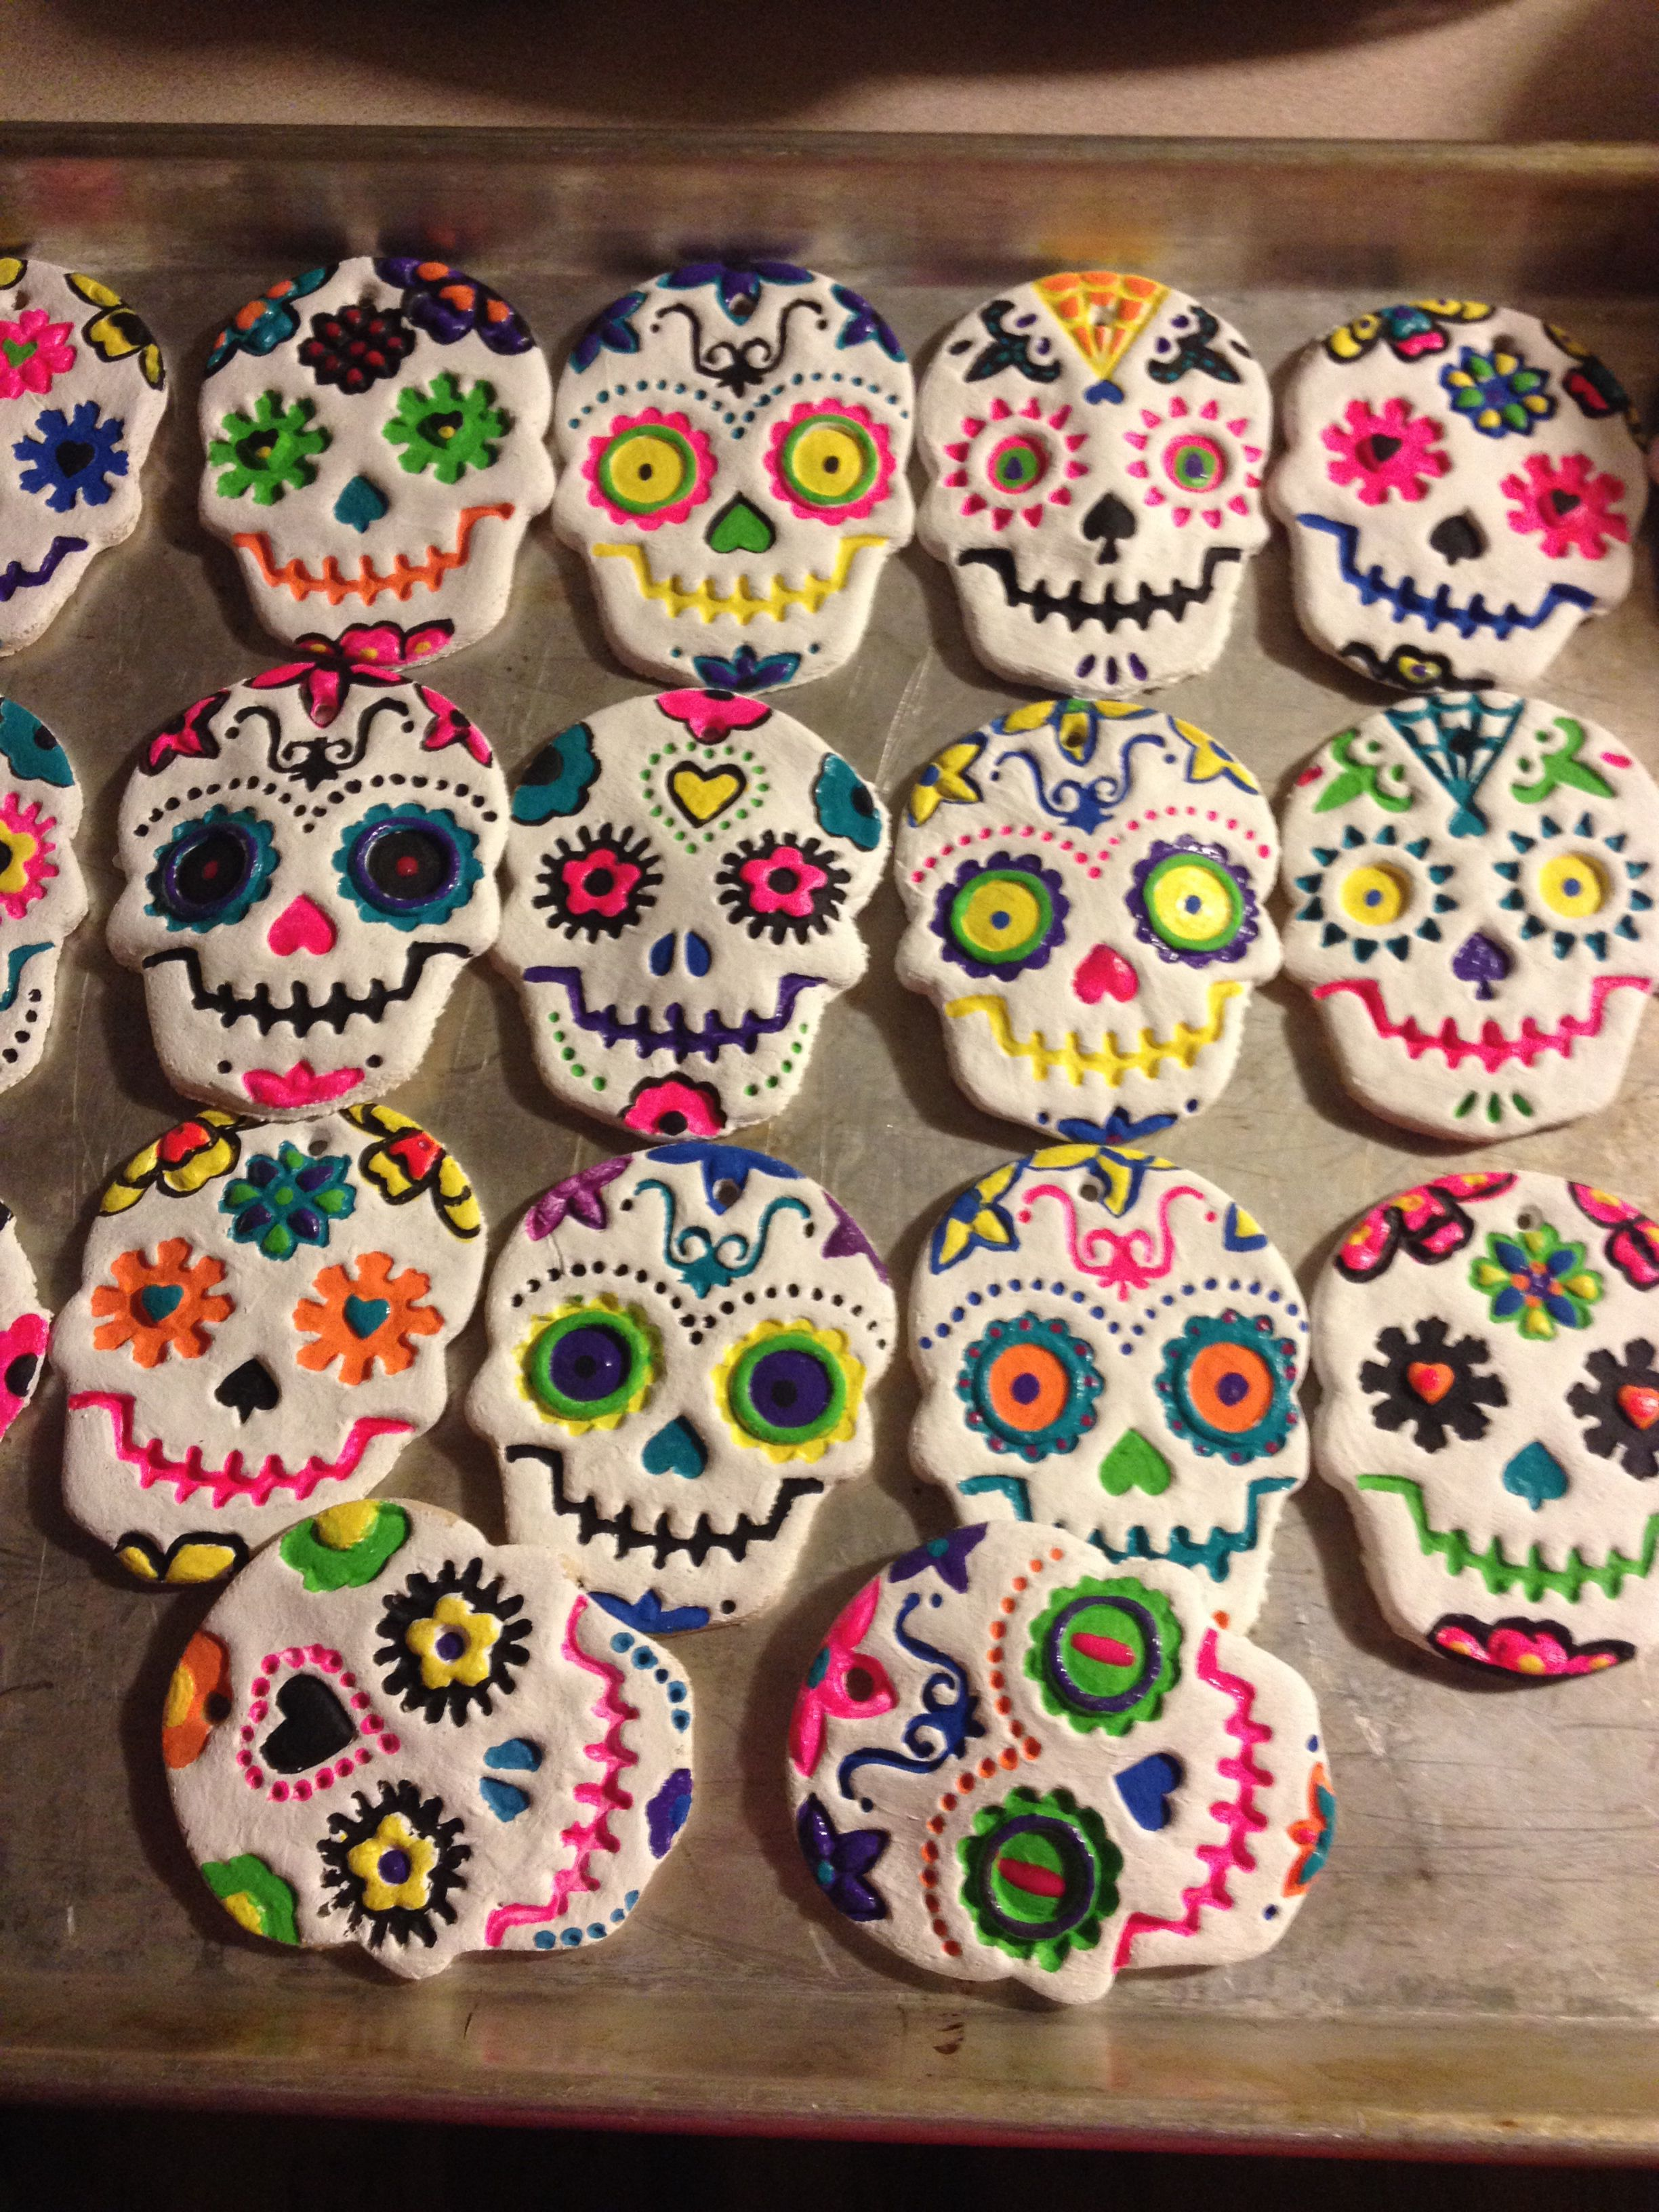 Pin By Jen Brookhouse On Craft Ideas Salt Dough Crafts Salt Dough Sugar Skull Crafts